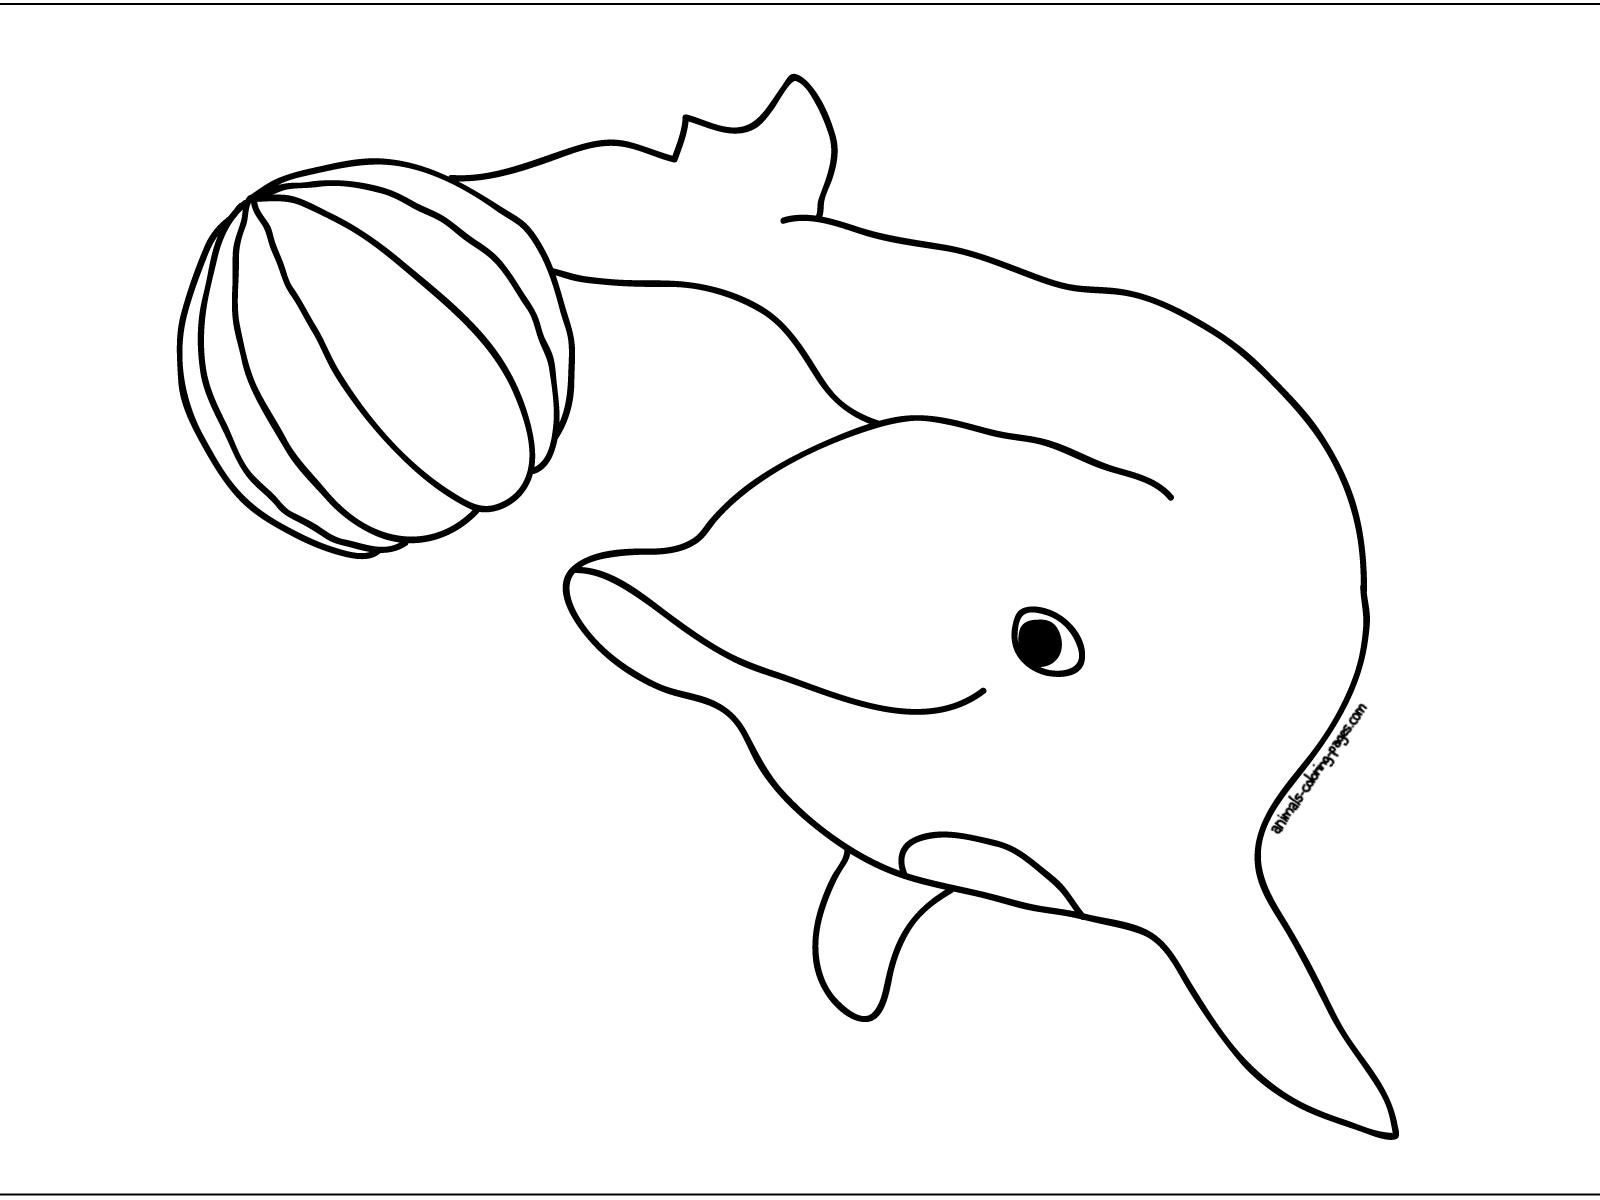 Dolphin Worksheet To Print